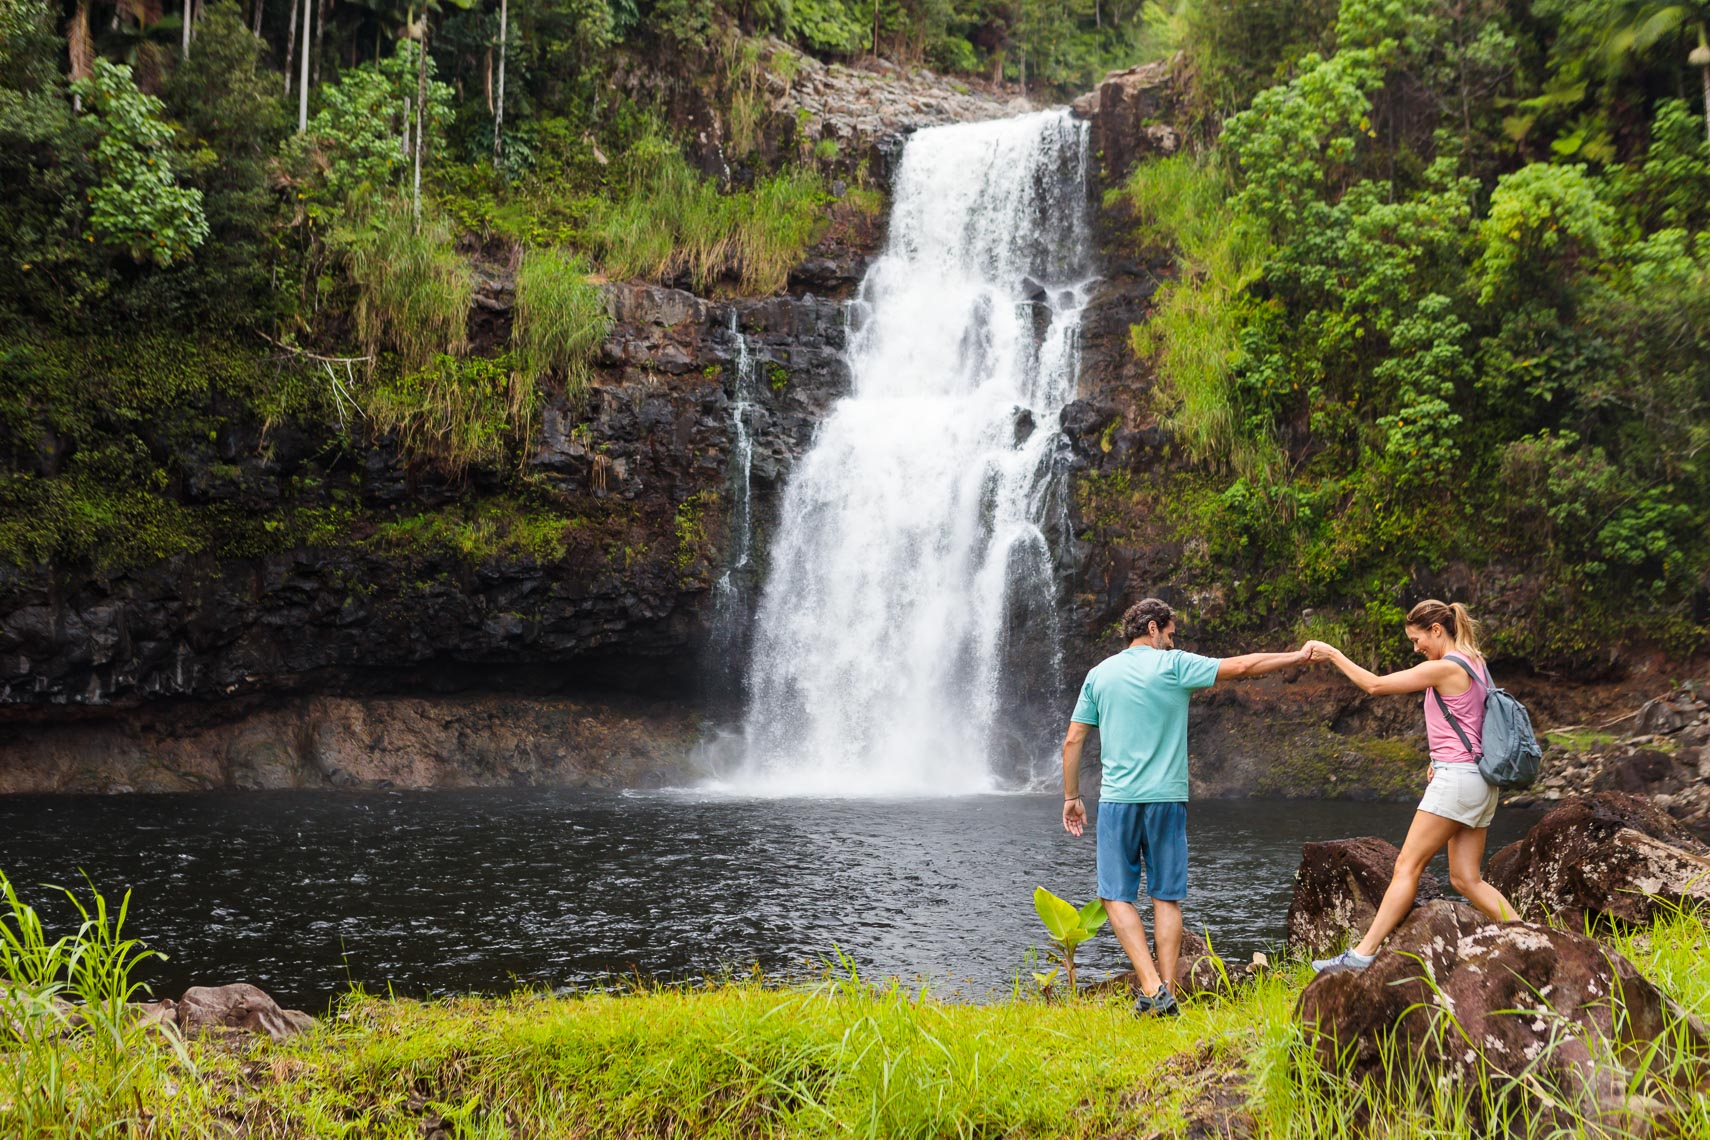 Norwegian Cruise Line Hawaii Couple Waterfall Hike | Michael DeYoung